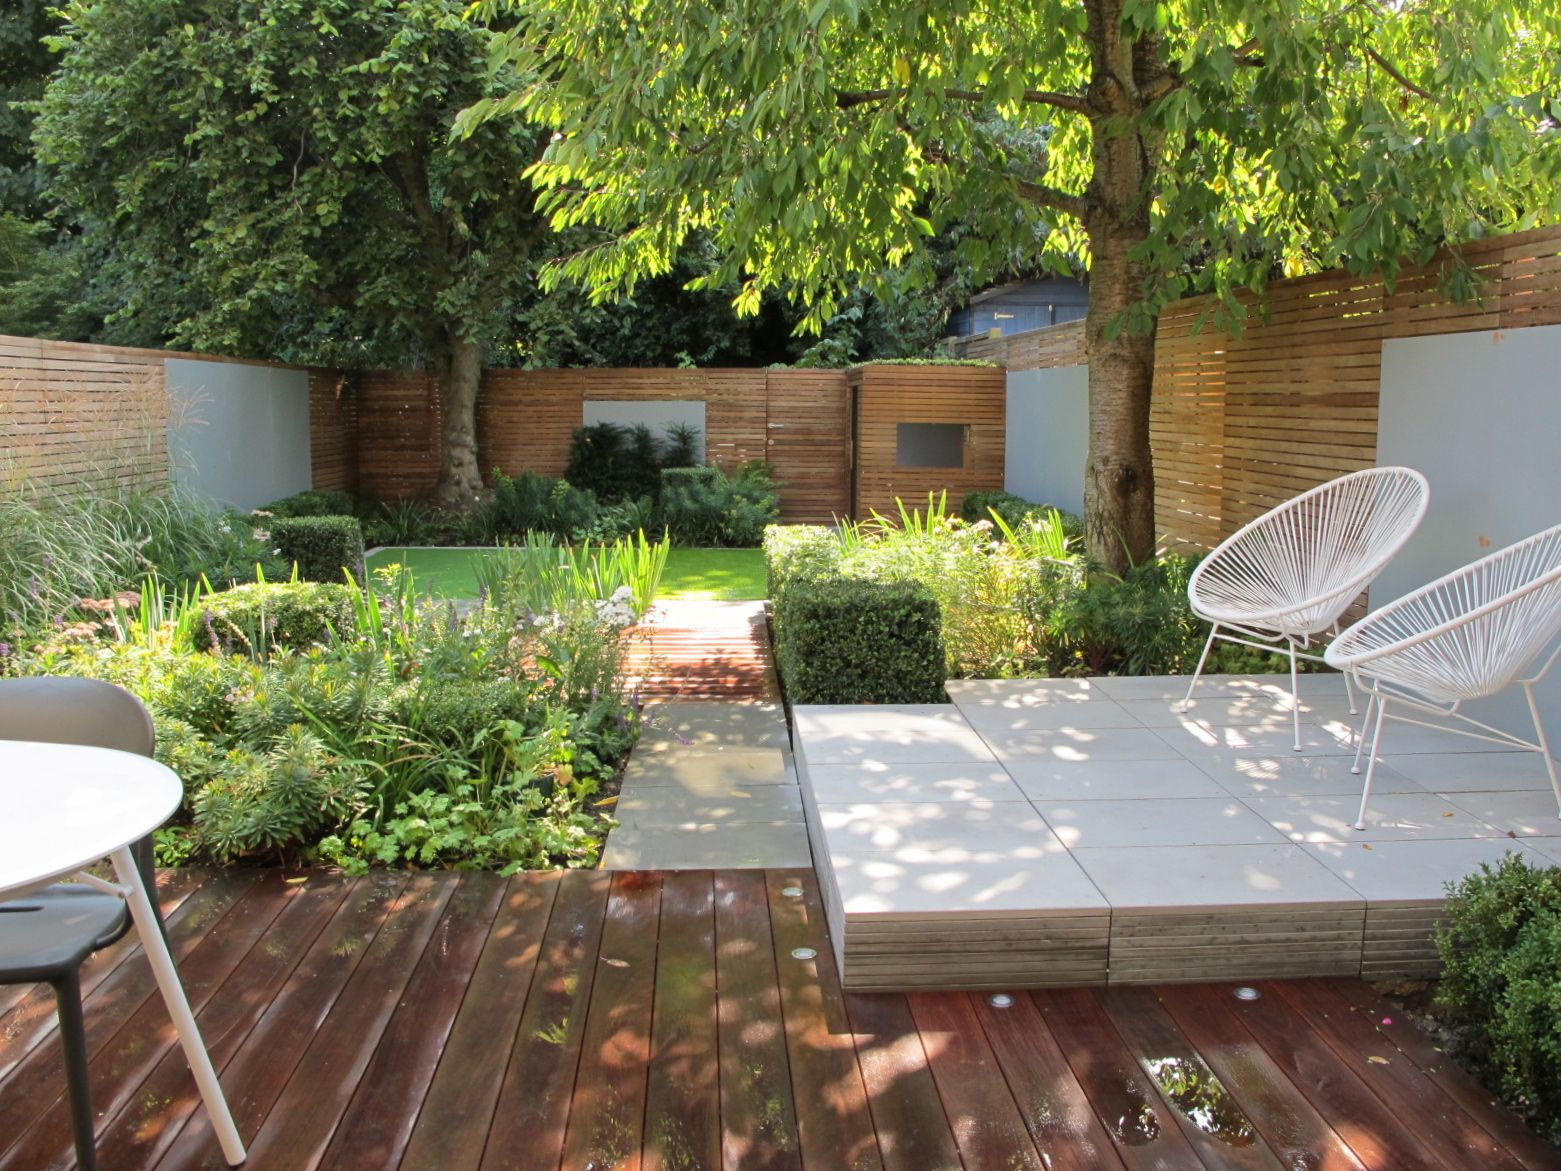 Garden As Featured On Alan Titchmarshs Show Love Your Garden Itv North London Garden Contemporary Gardensmodern Gardensmodern Garden Designmodern Small